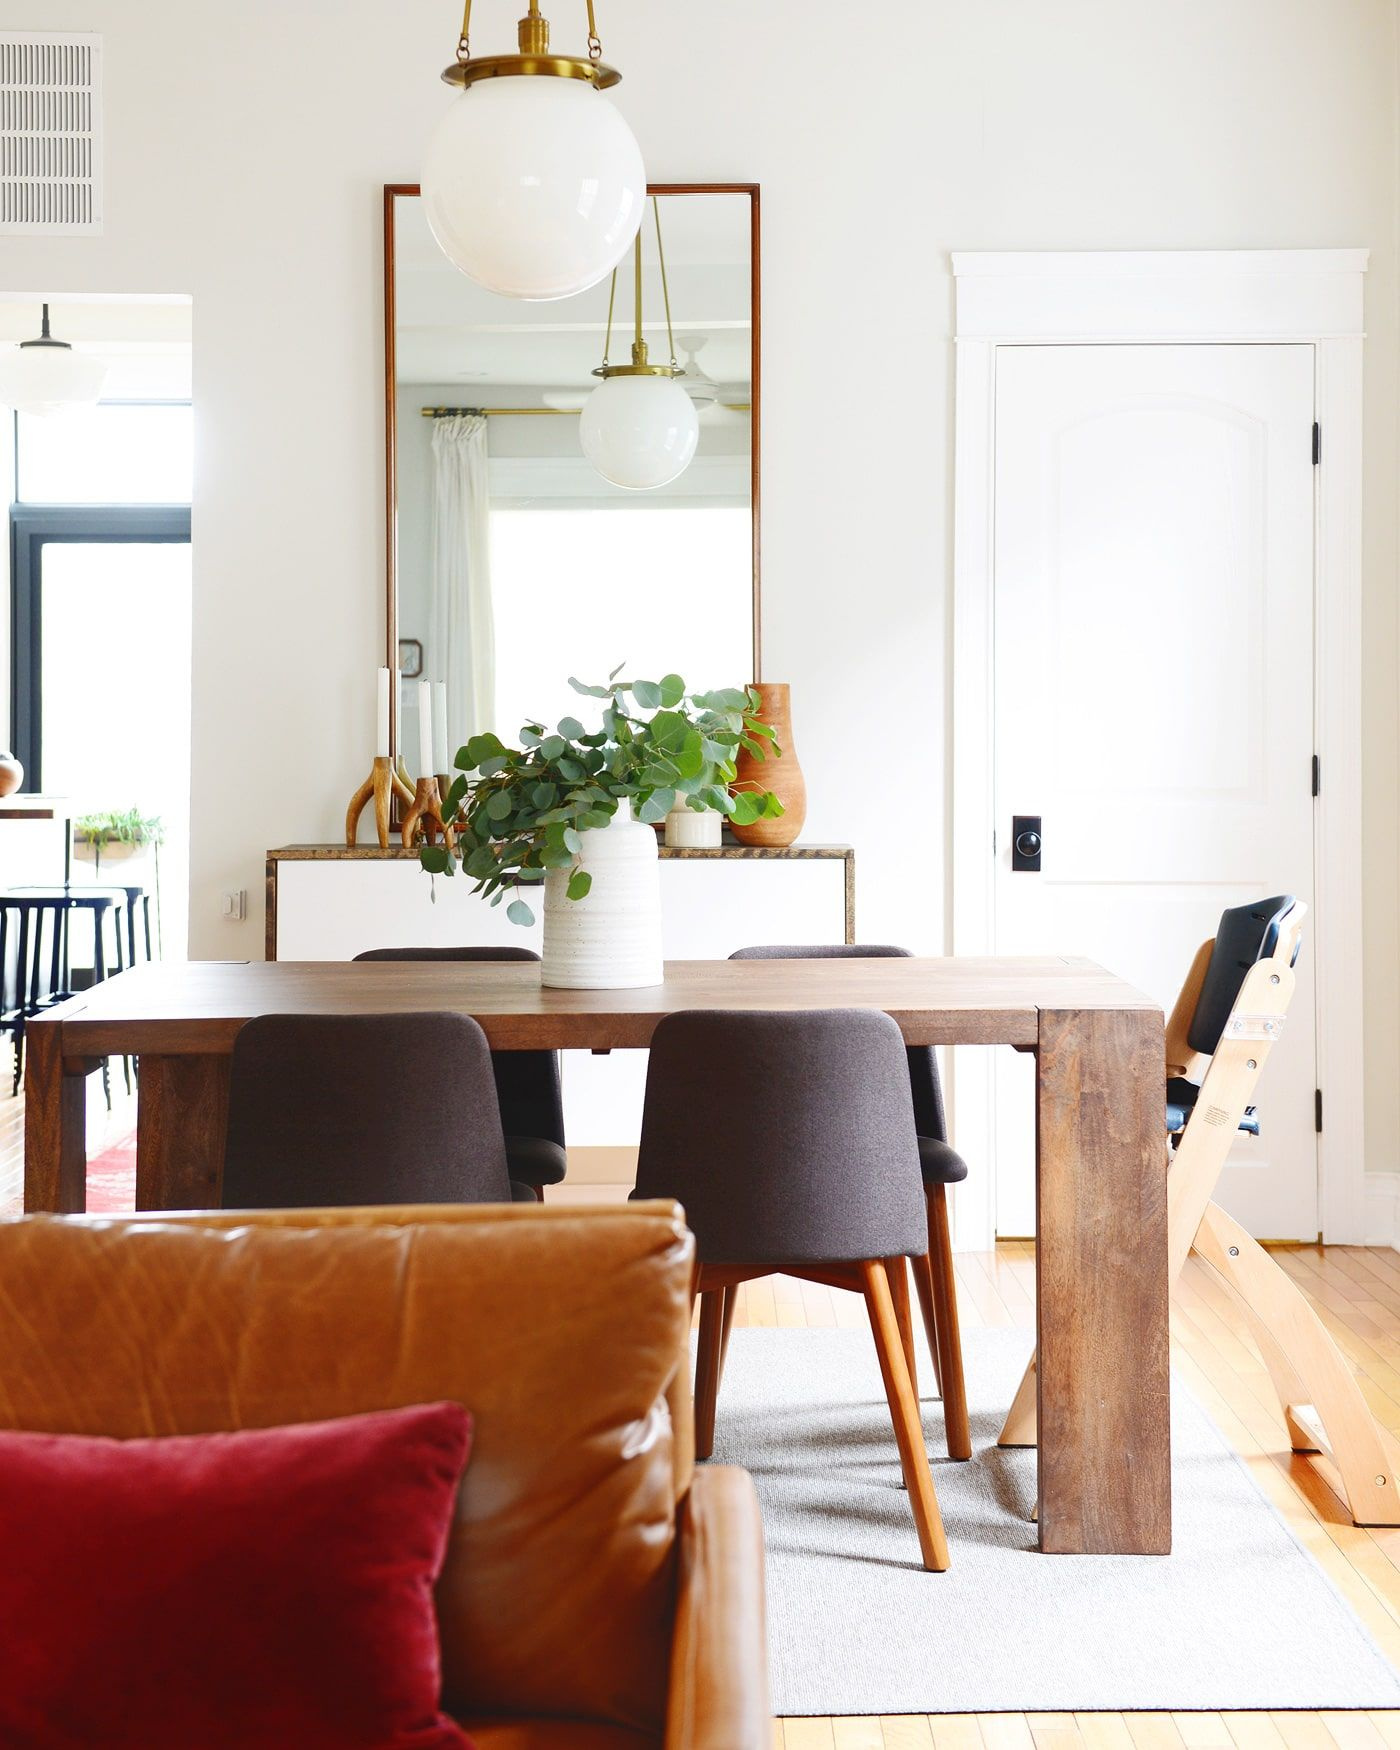 5 General Rules To Mixing Wood Tones Hearth Room Decor Dining